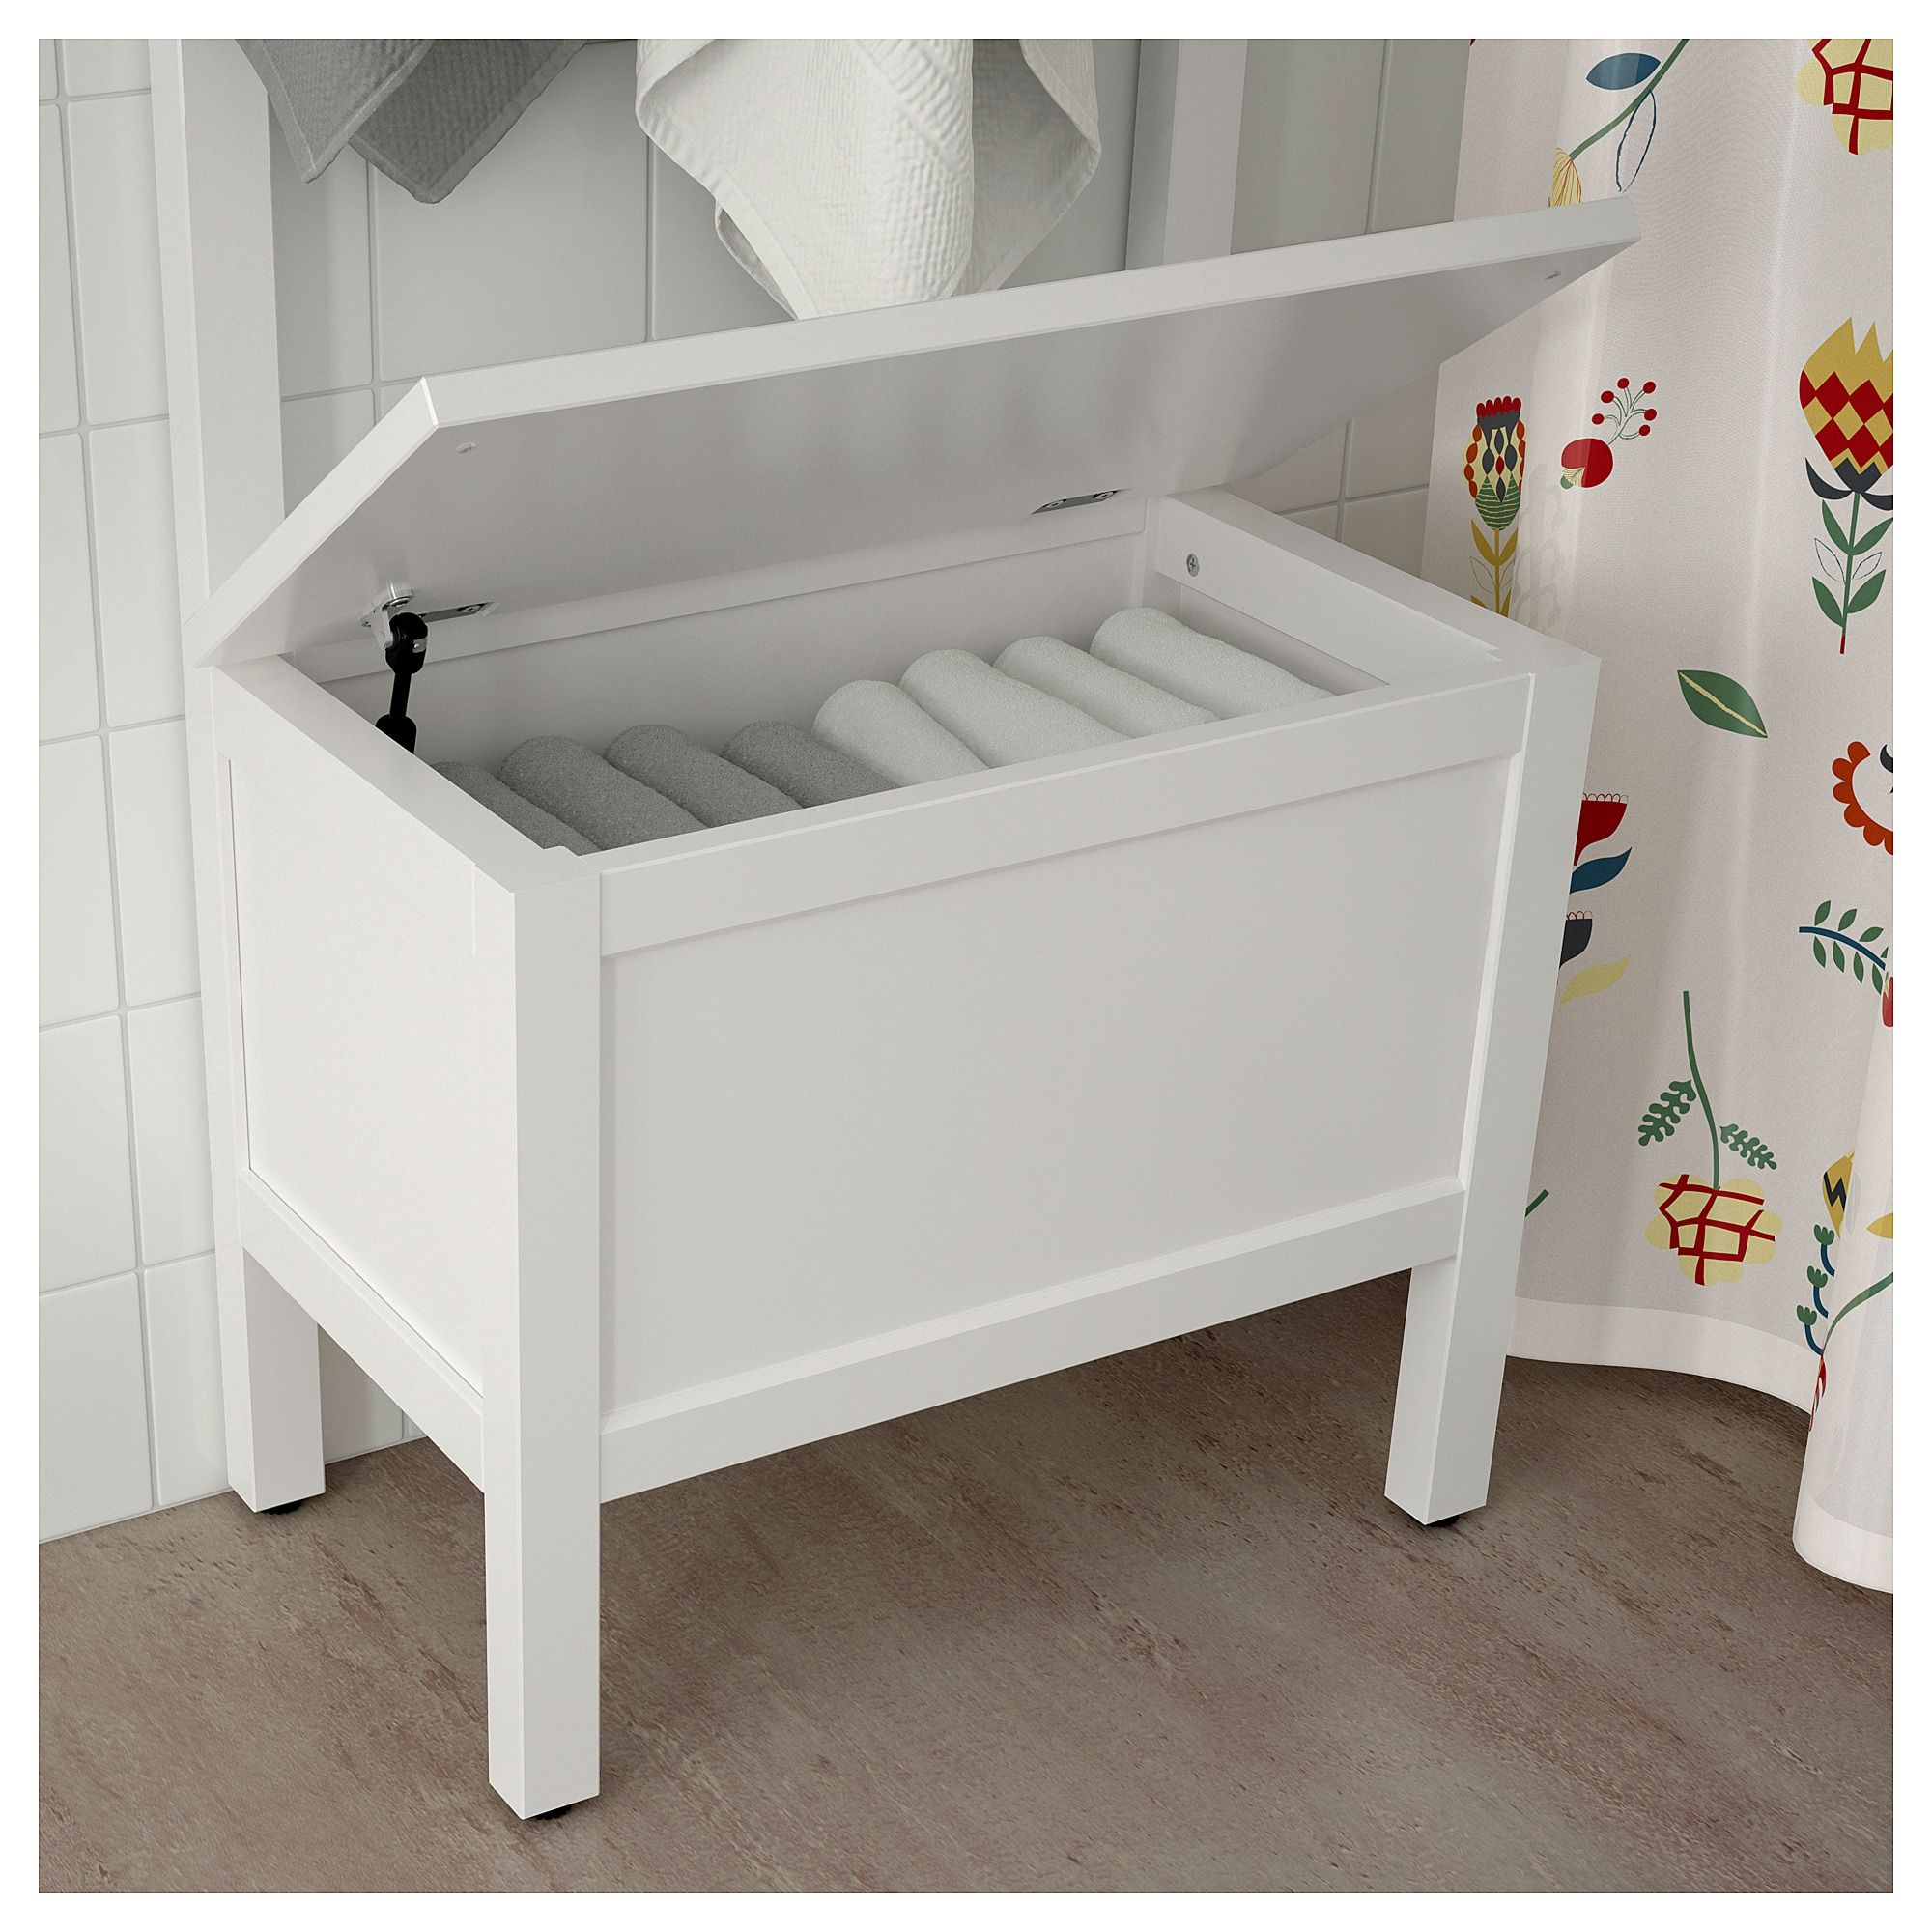 Hemnes Storage Bench W Towel Rail 4 Hooks White 25 1 4x14 5 8x68